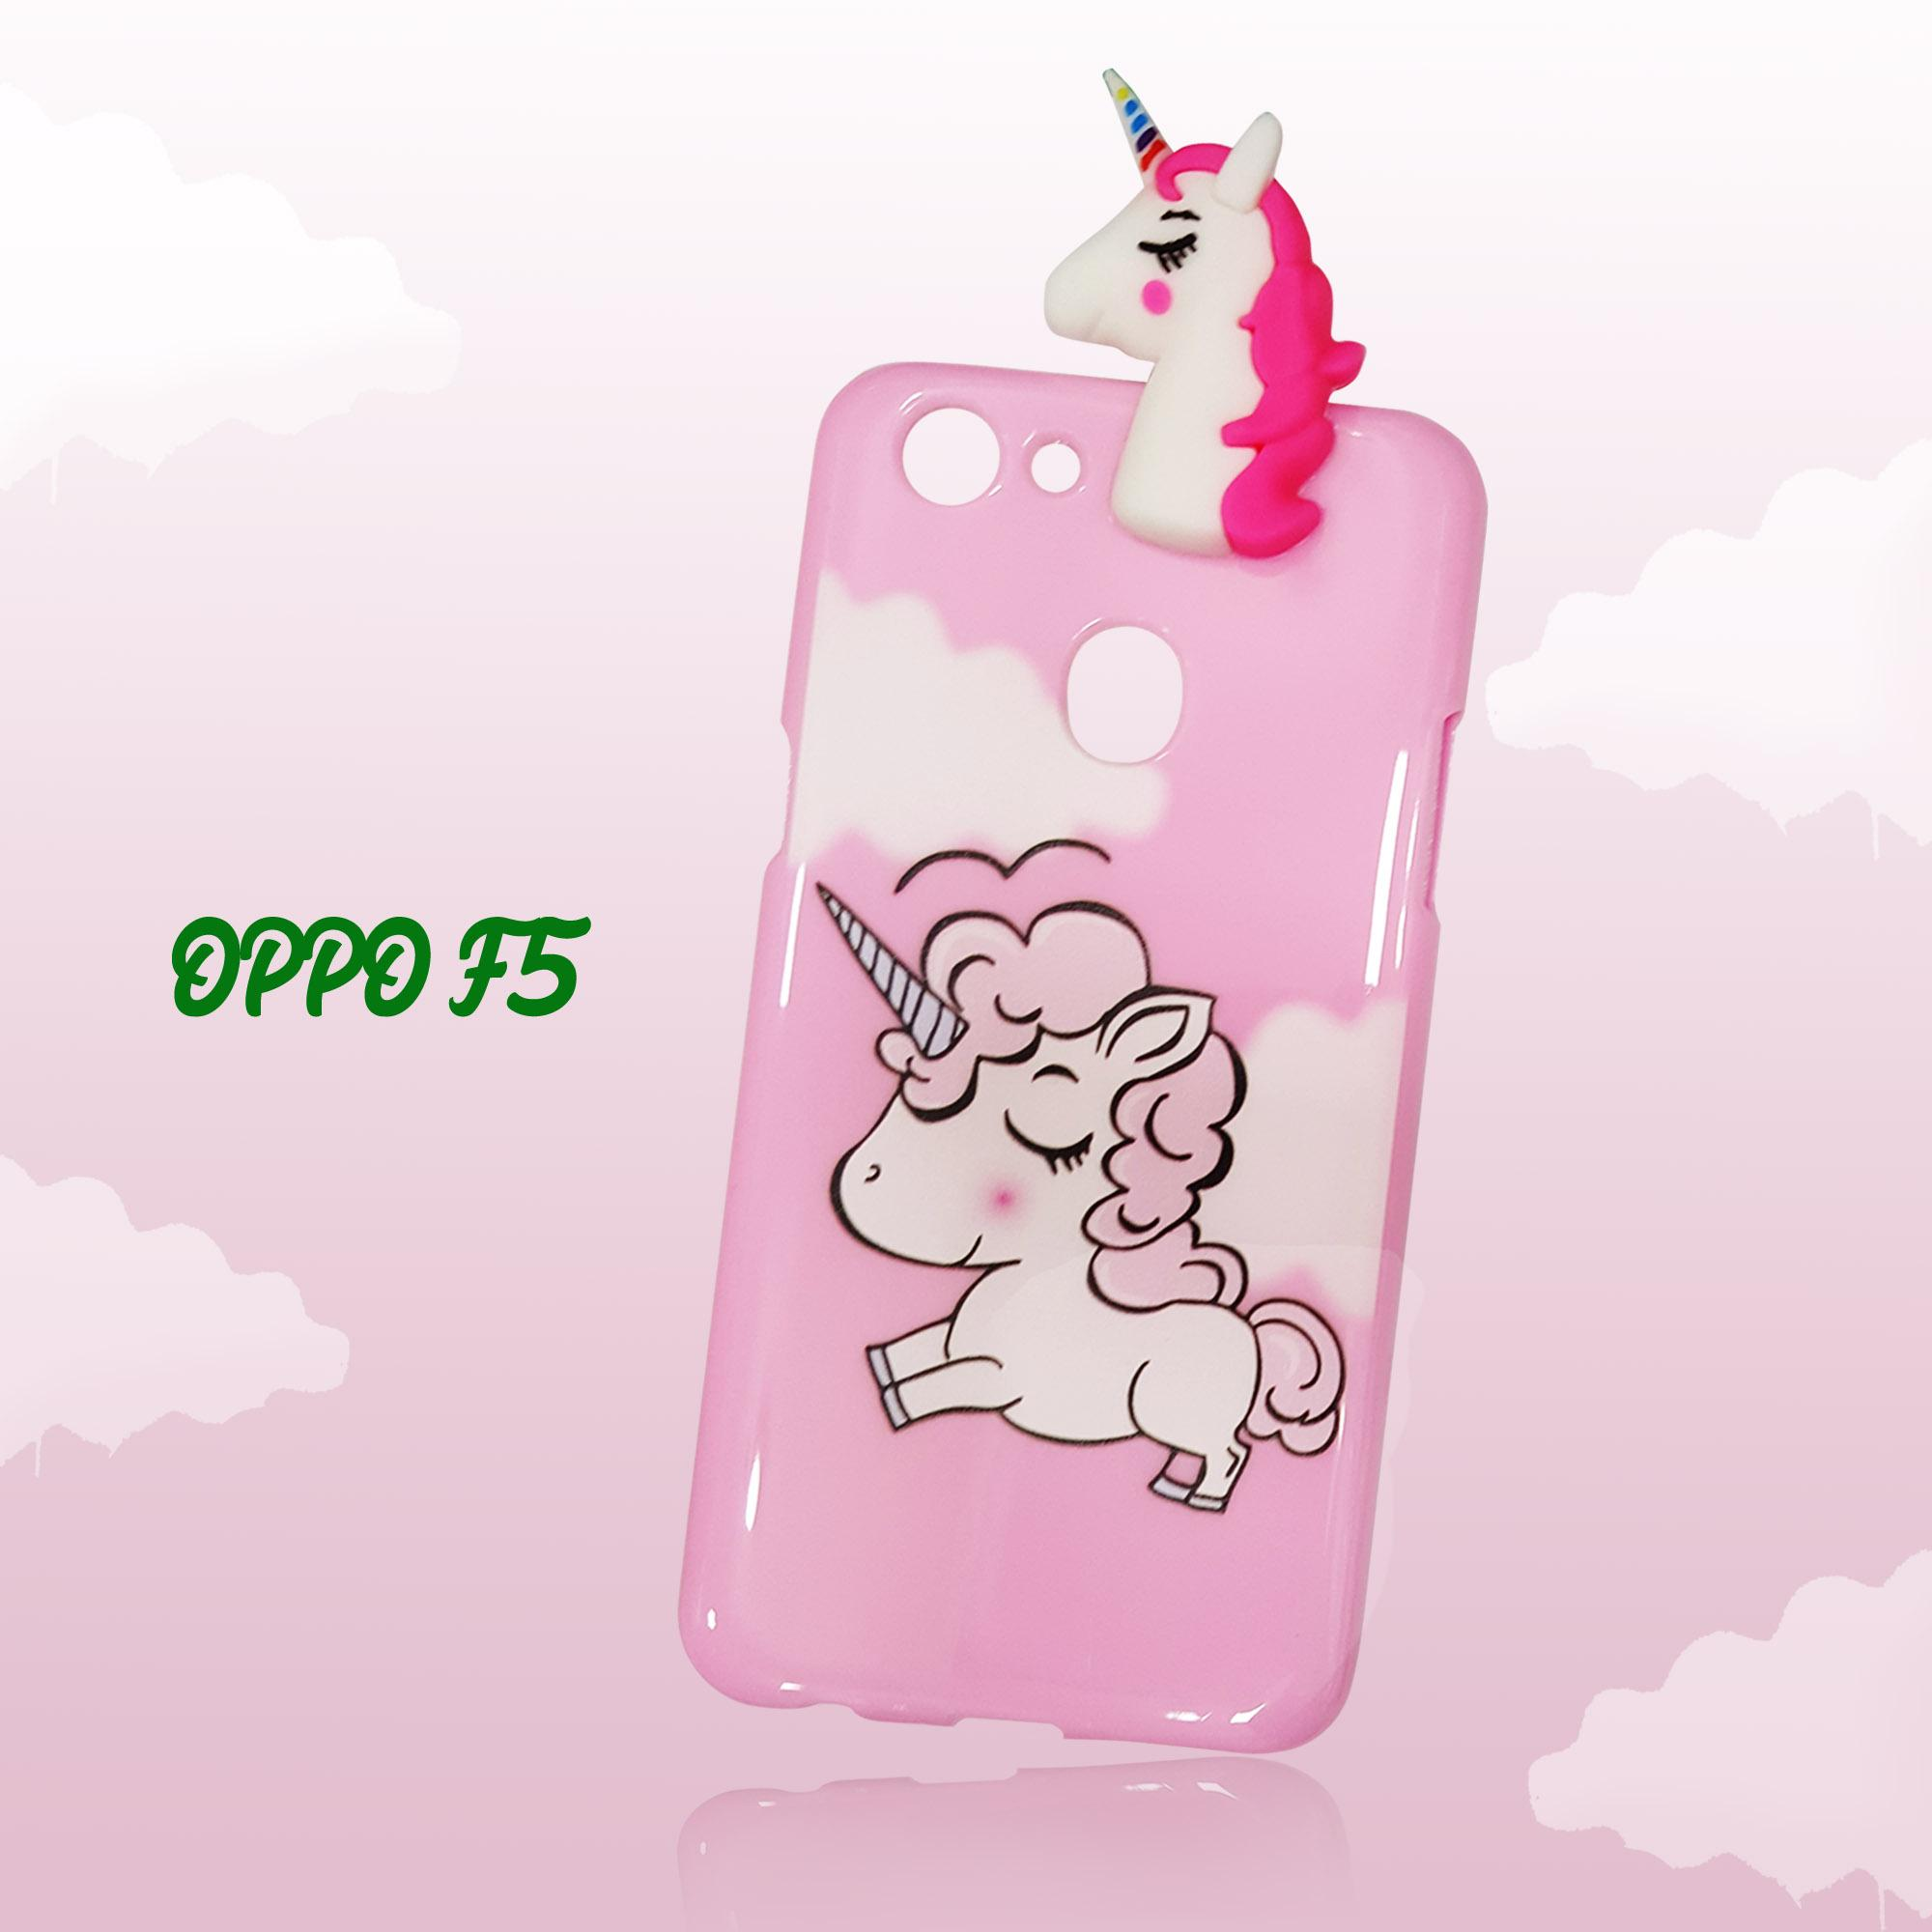 Marintri Case Oppo F5 New Unicorn Manjat